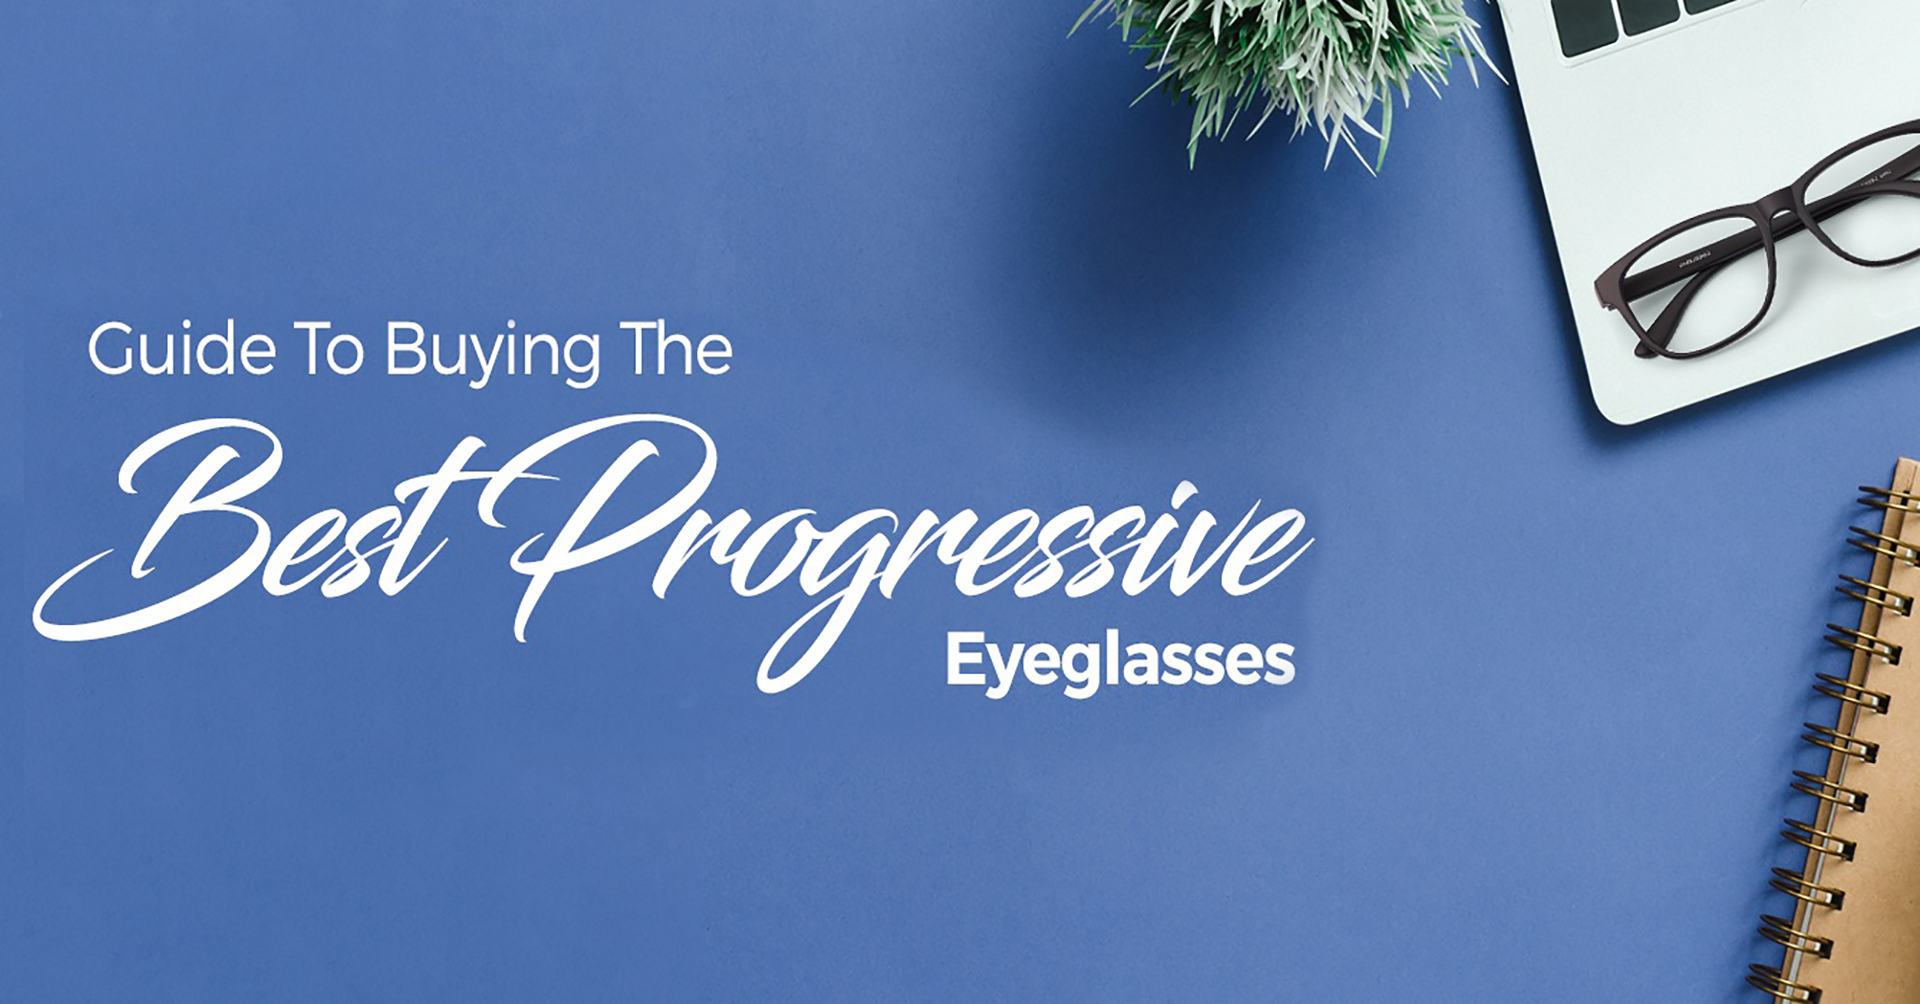 5)GUIDE TO BUYING THE BEST PROGRESSIVE EYEGLASSES